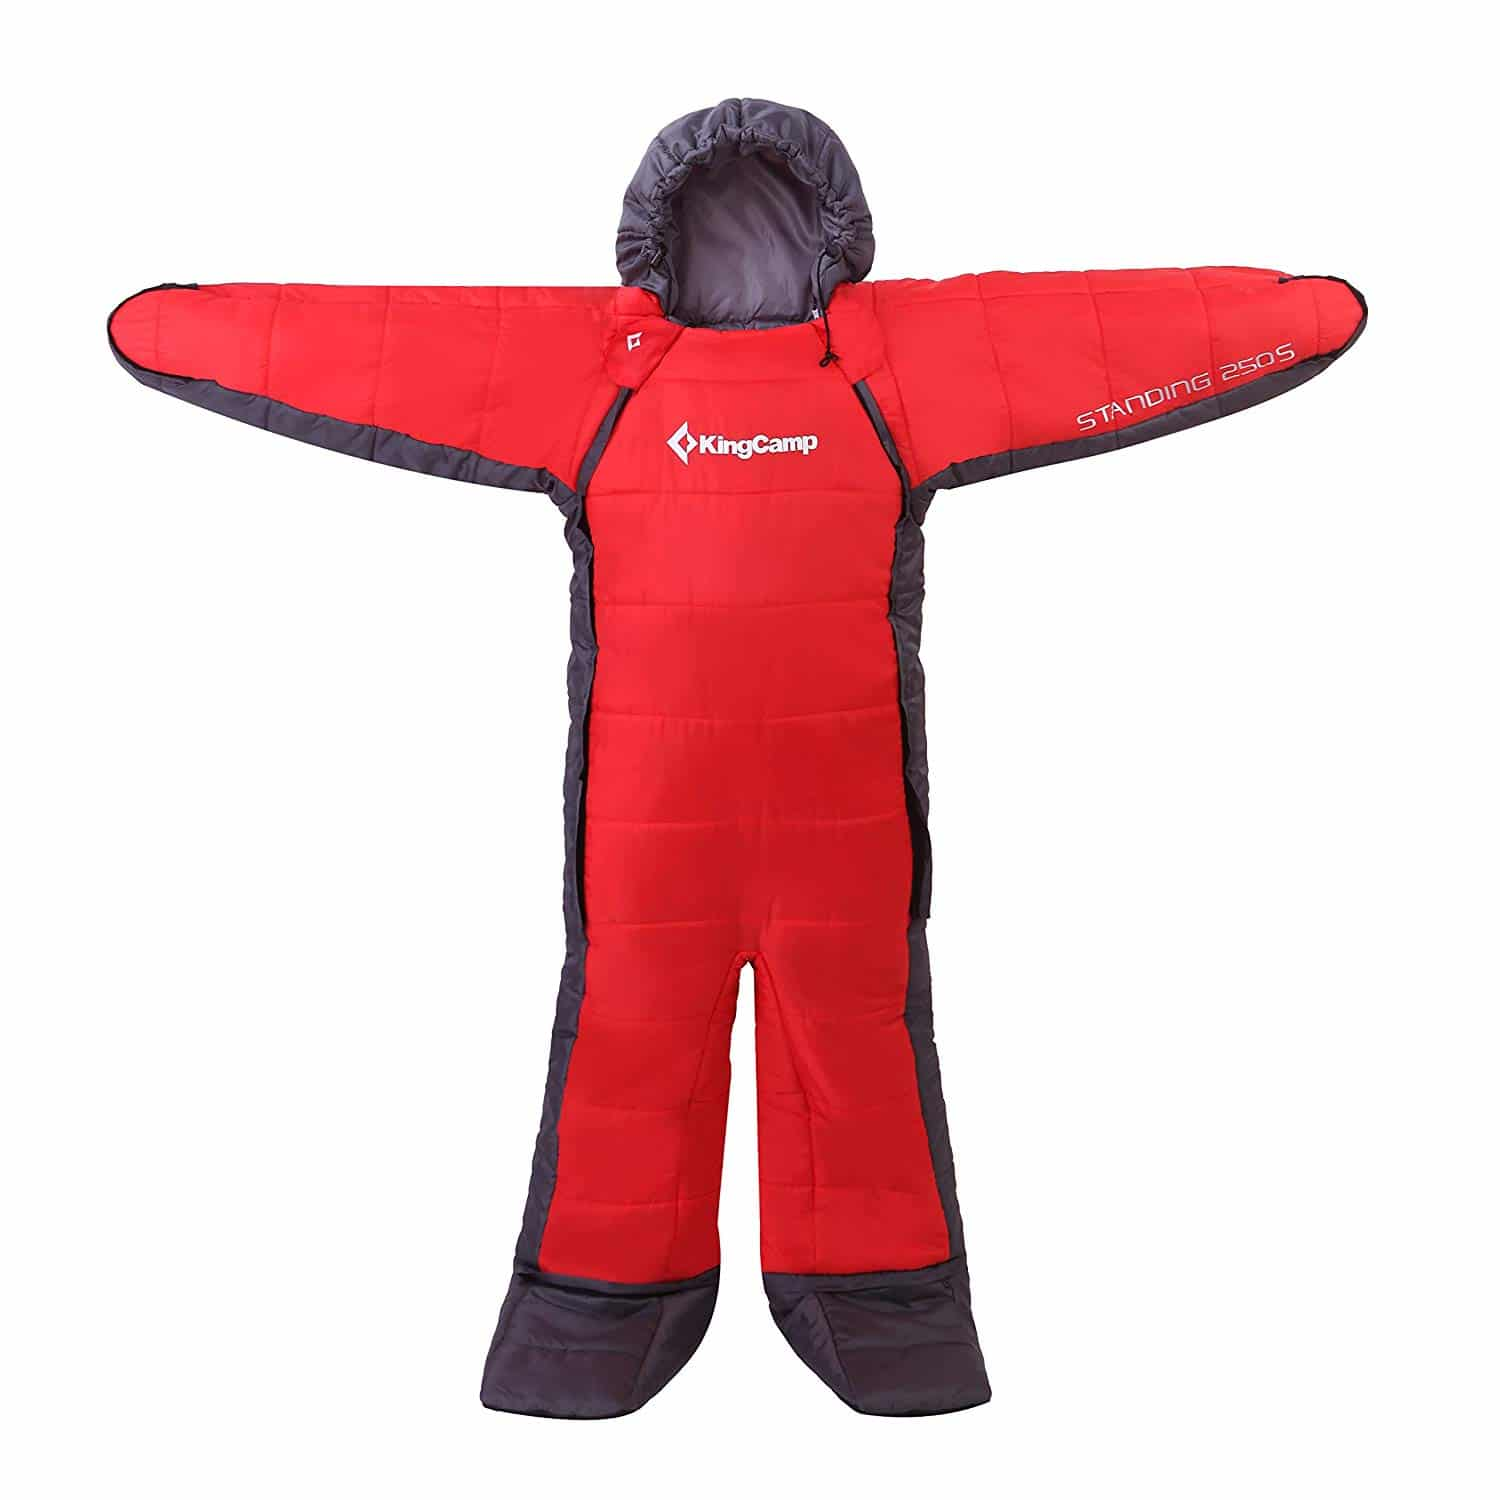 KingCamp Standing 3 Season -8 Degree C/17.6 Degree F Full Body Wearable Sleeping Bag for Family, Free Walker Design (Youth, Adults)